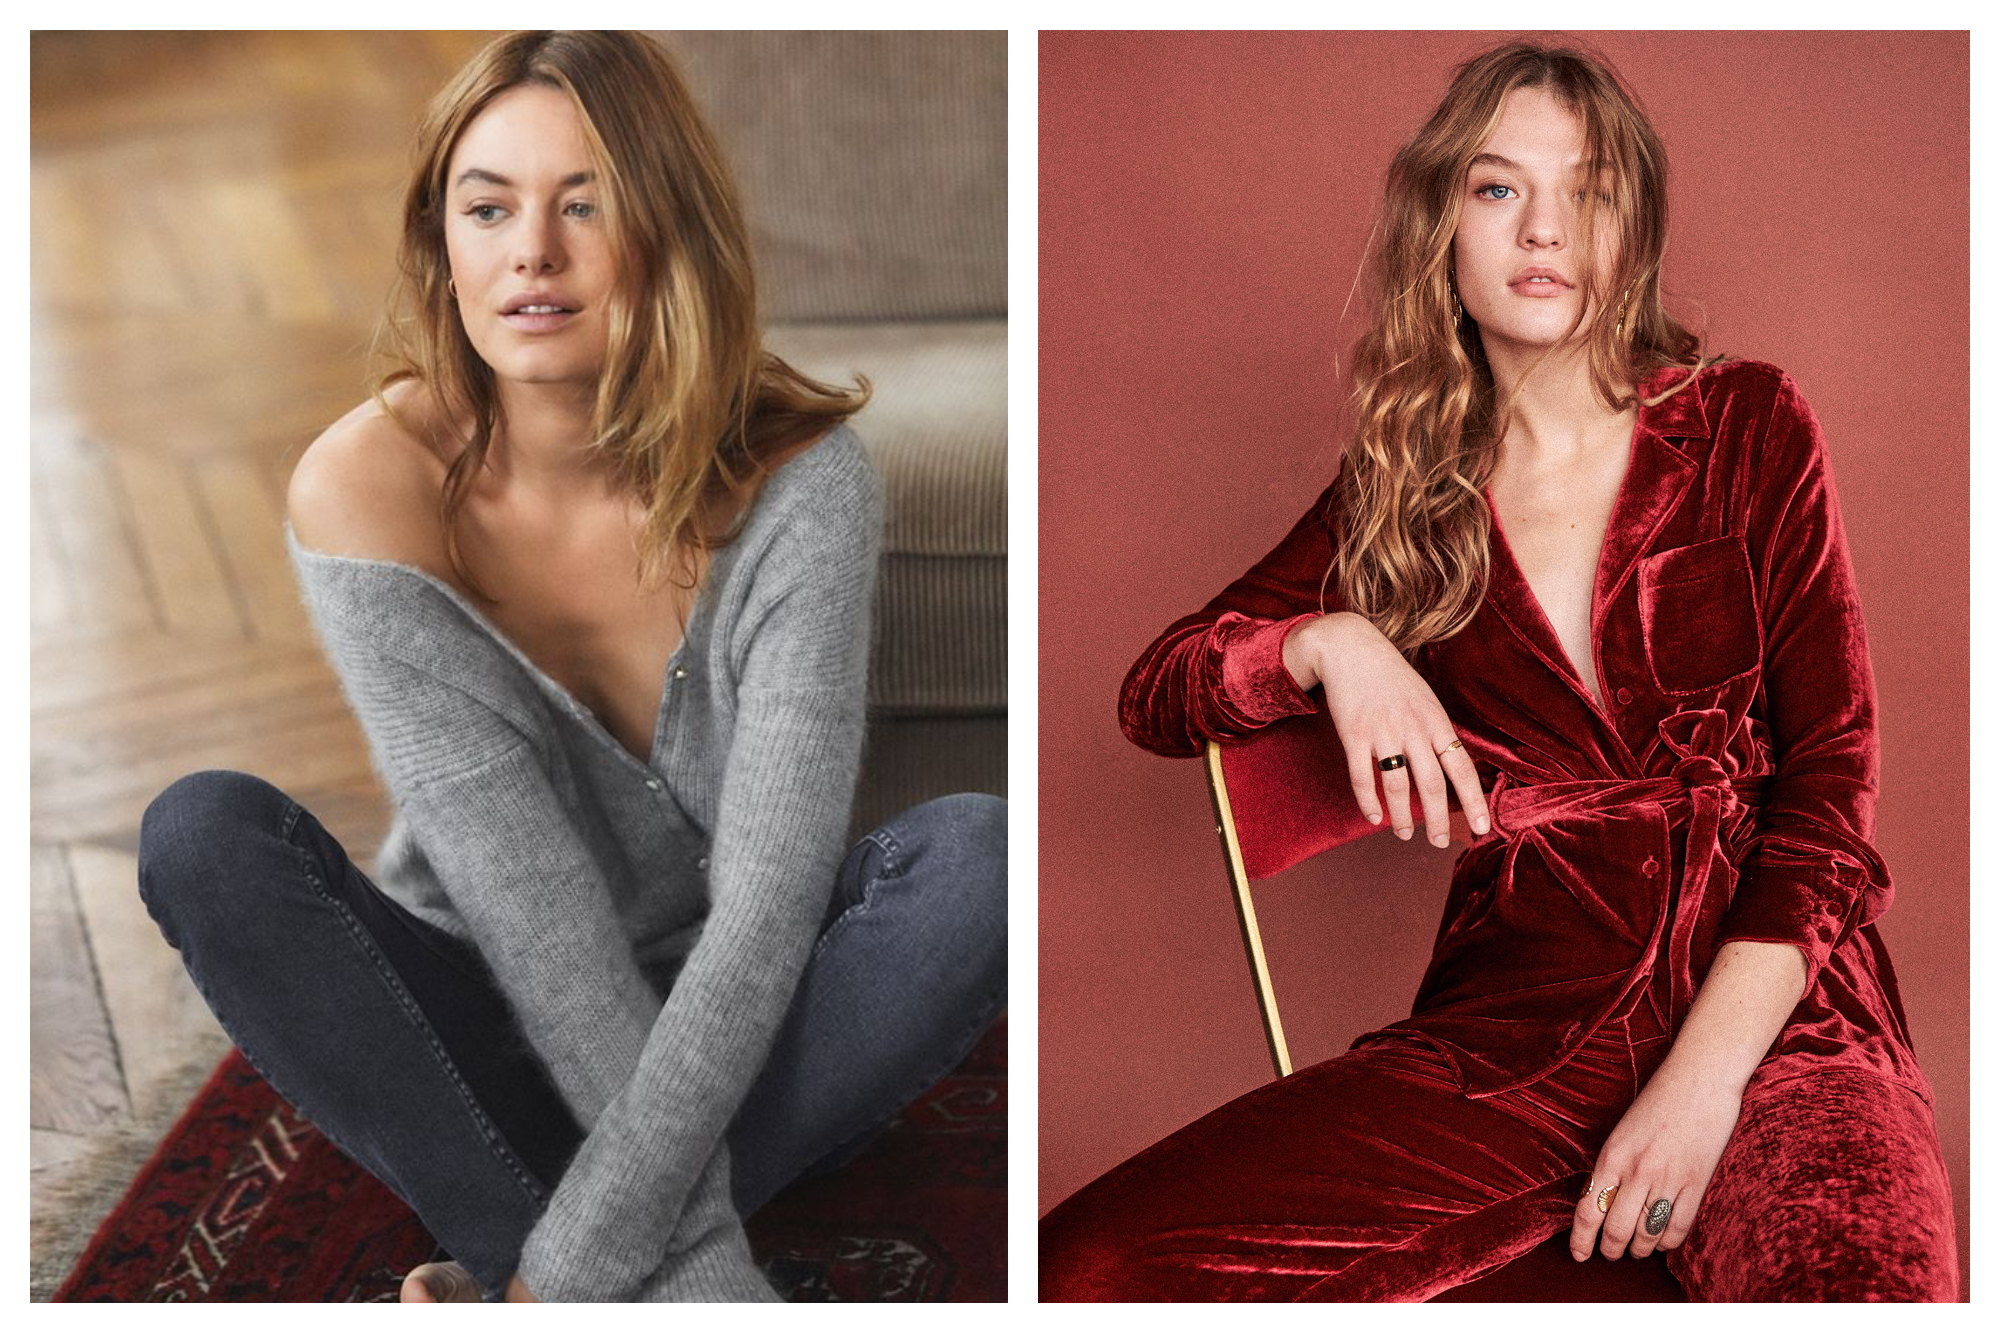 On the left: A model cozies up on a rug next to a recliner, arms and legs folded. A ribbed- v-neck, fuzzy grey sweater by the Paris-based fashion brand Sézane gently slips off her right shoulder. On the right: Against a dusty red backdrop and sitting casually on a red and gold chair, a model stares at the camera sporting a deep red velvet pyjama set, the top unbuttoned with a deep v-neck, but cheekily tied at the waist.